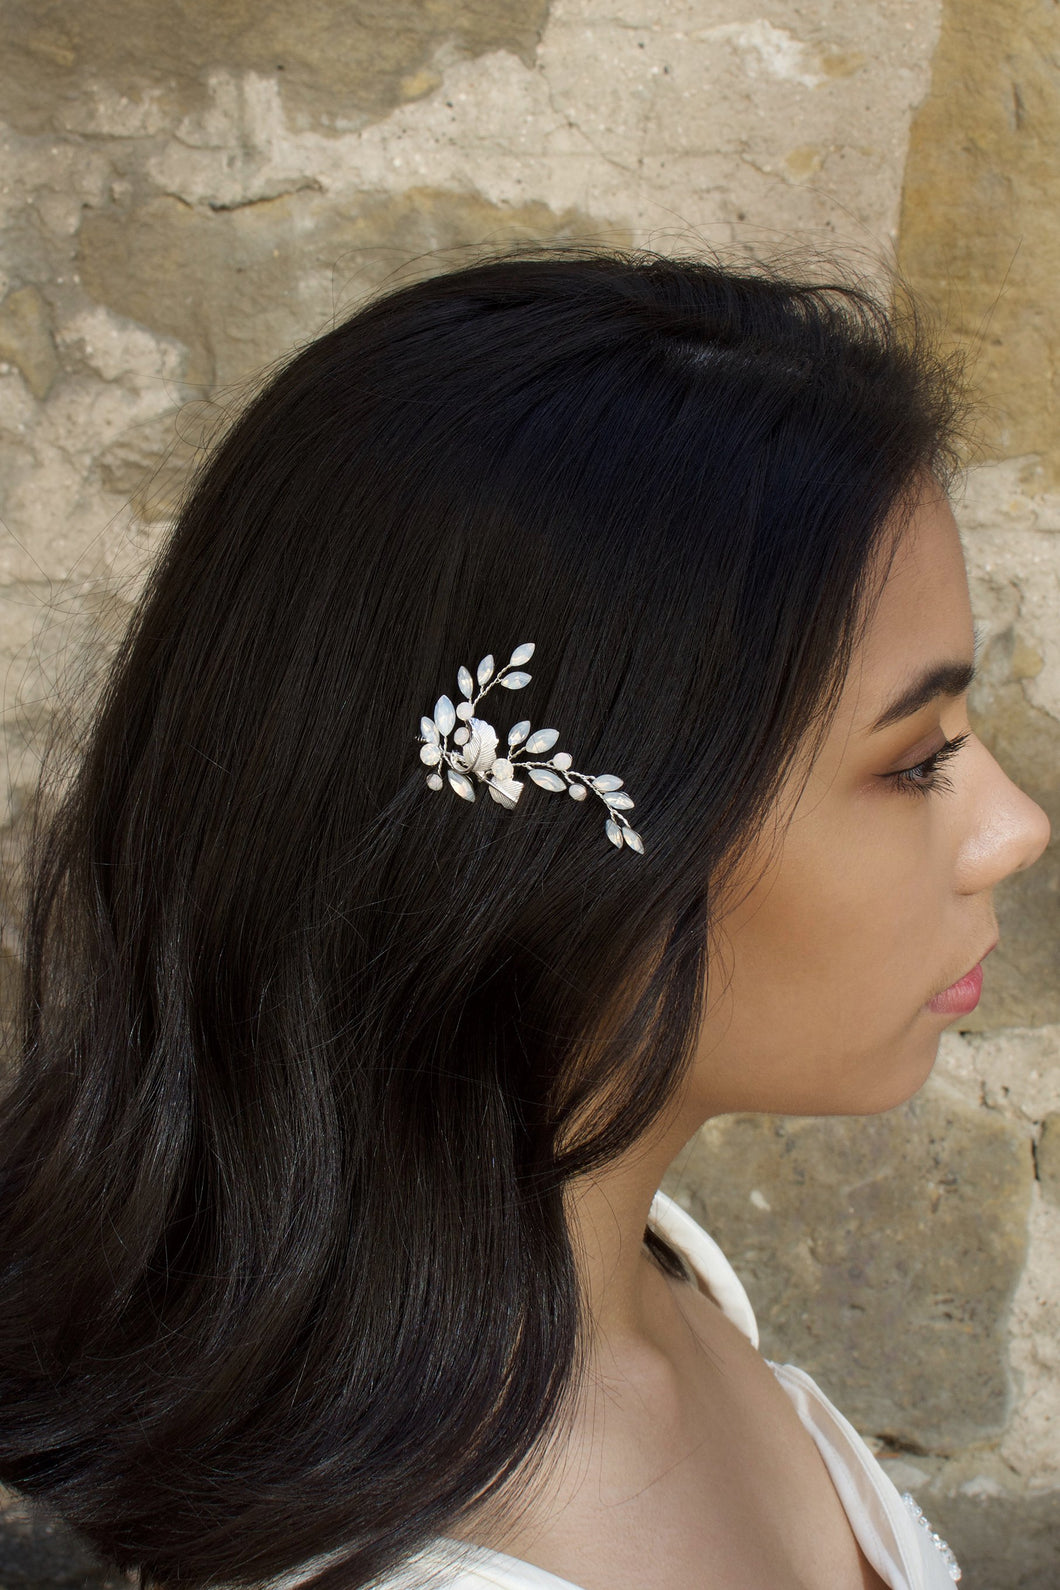 A dark haired model with long hair wears a small leaves bridal hair pin. In the background is a stone wall.